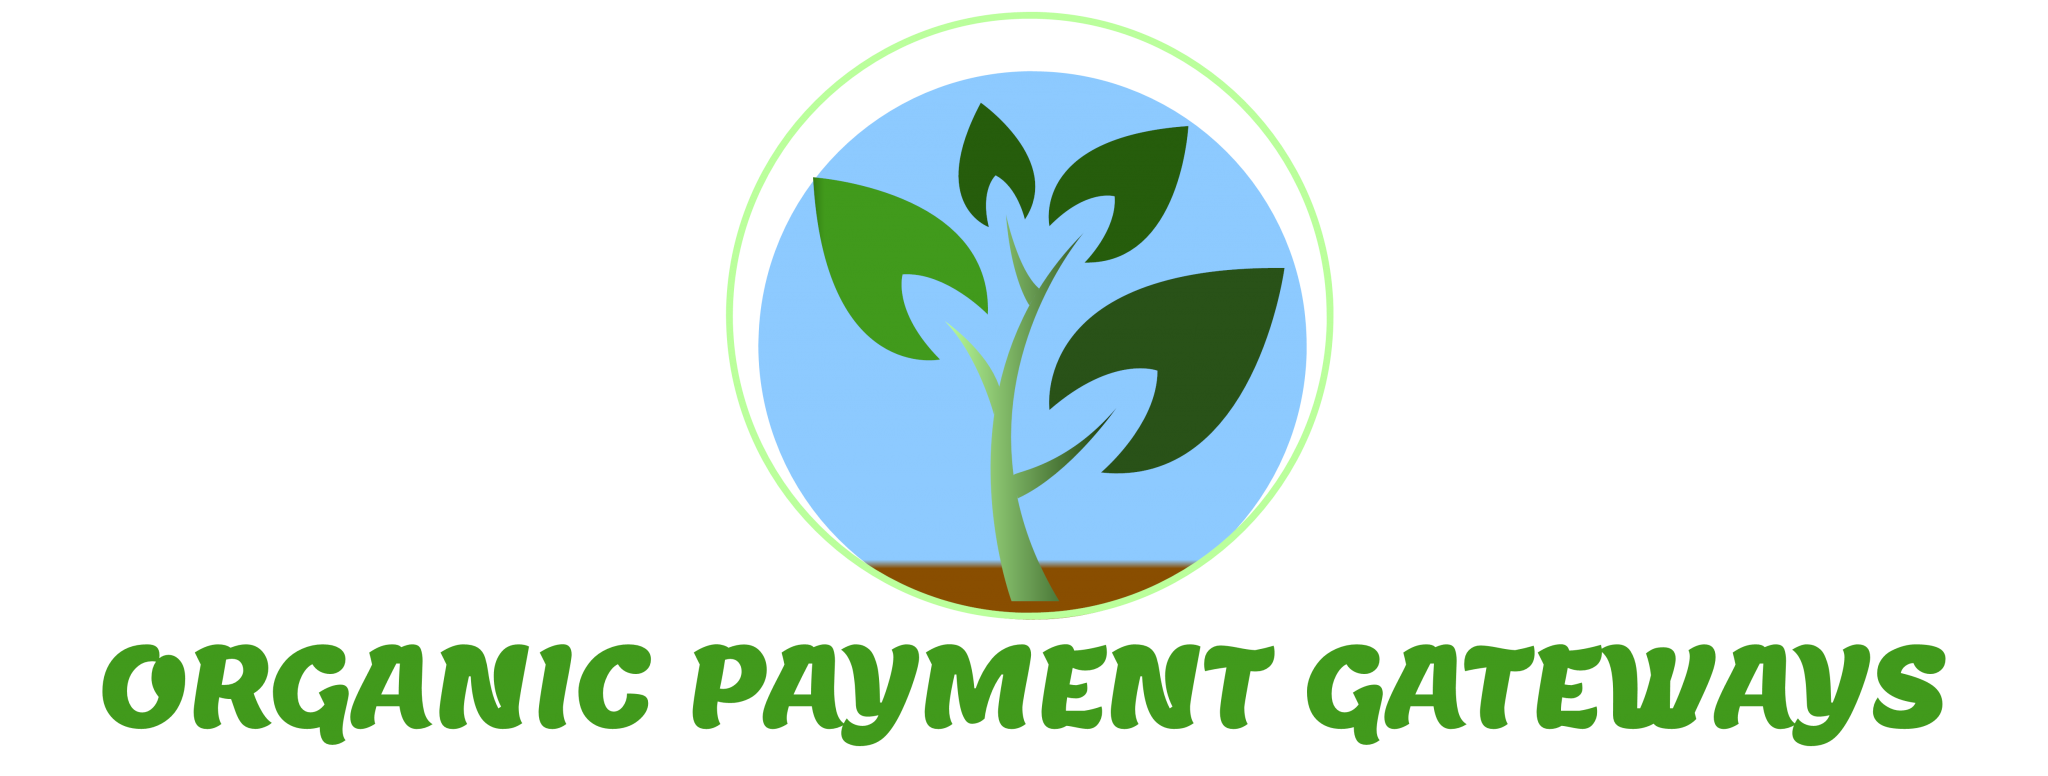 WooCommerce CBD Payment Gateways - Organic Payment Gateways